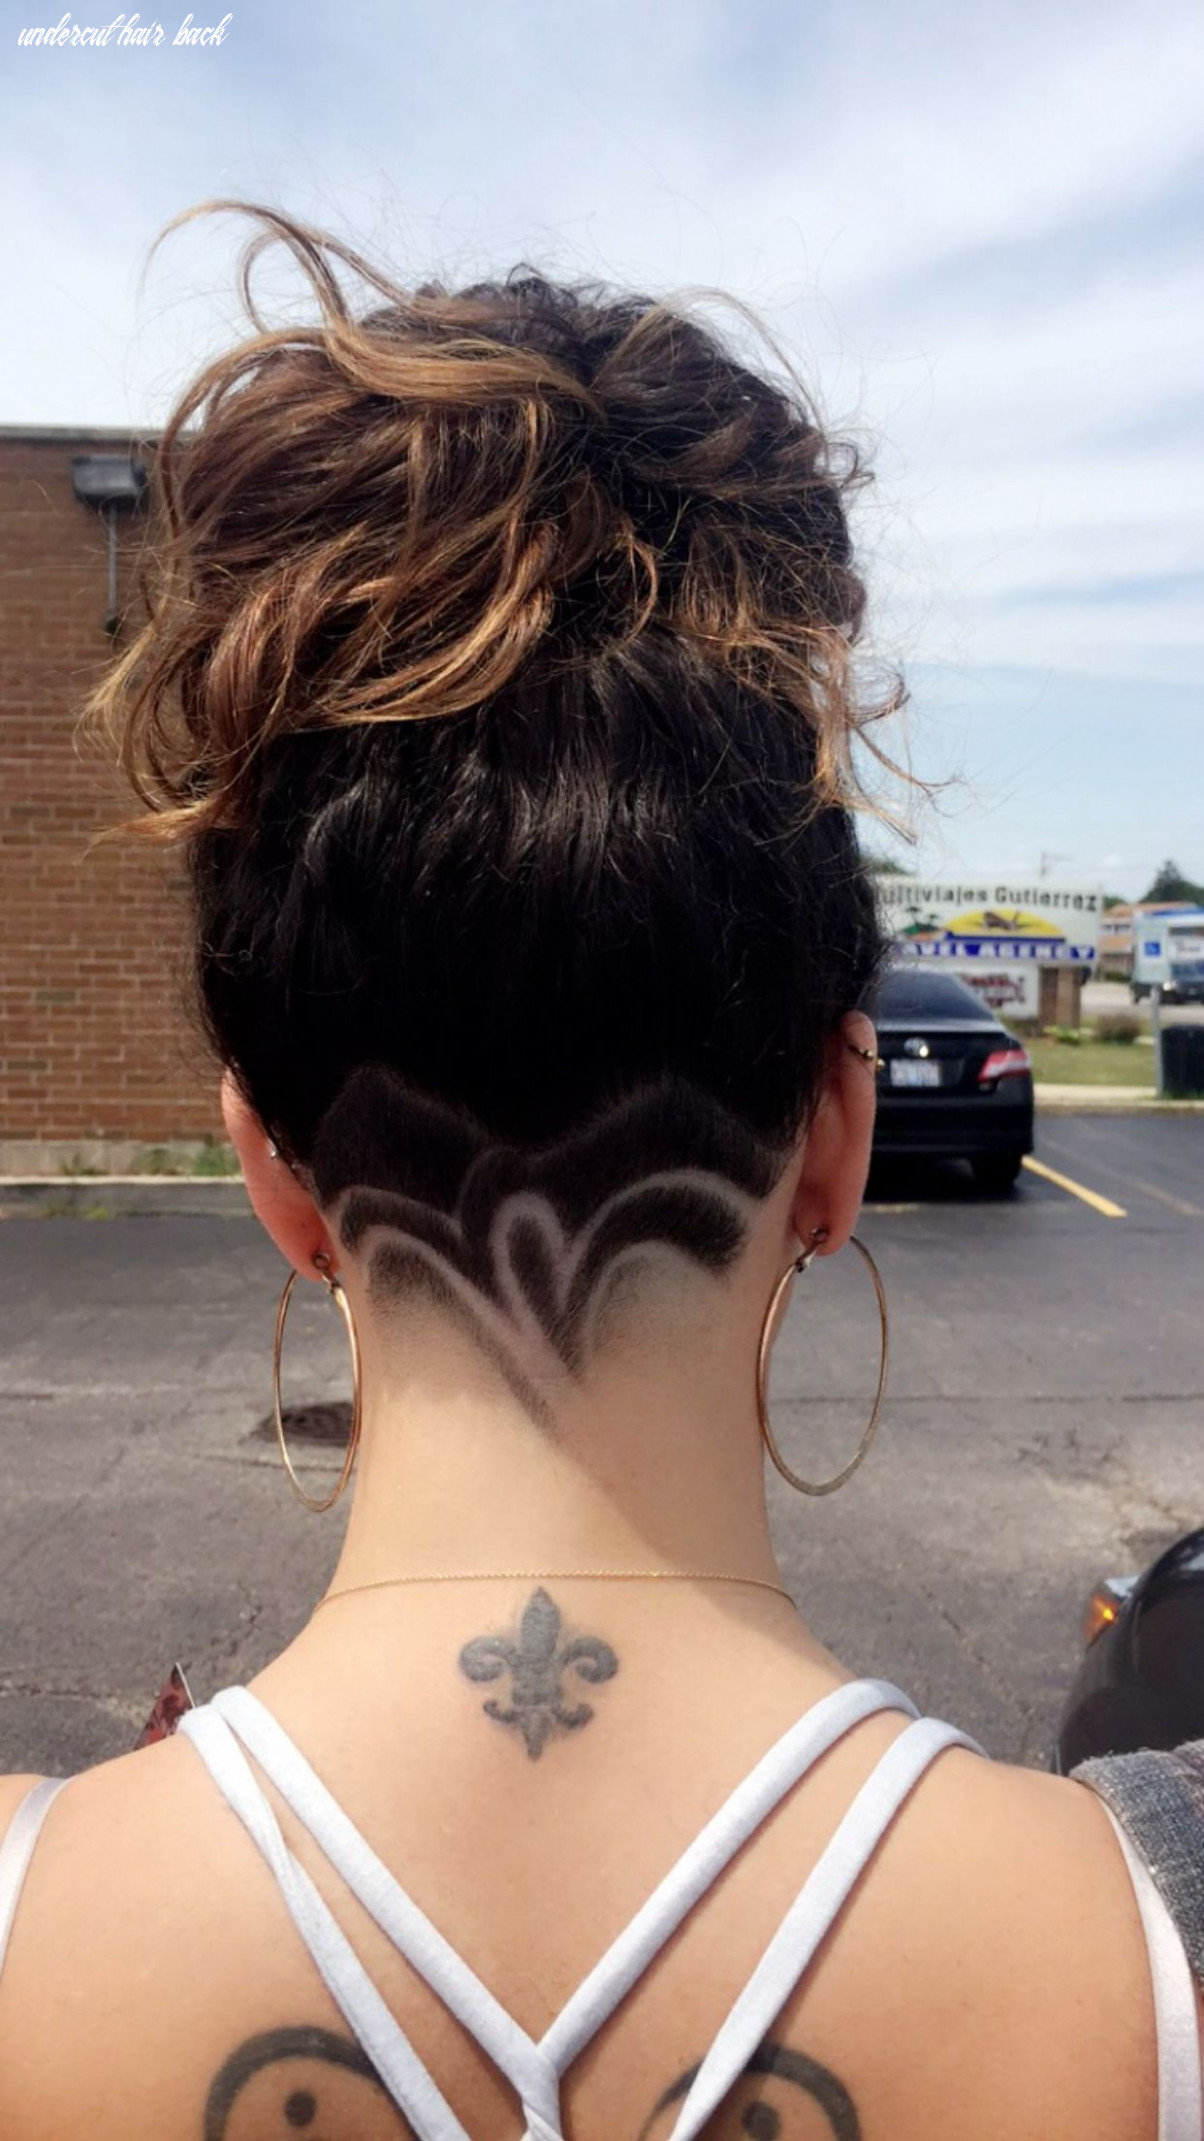 Undercut hair design More | Frisuren, Haarschnitt, Haarschnitt kurz